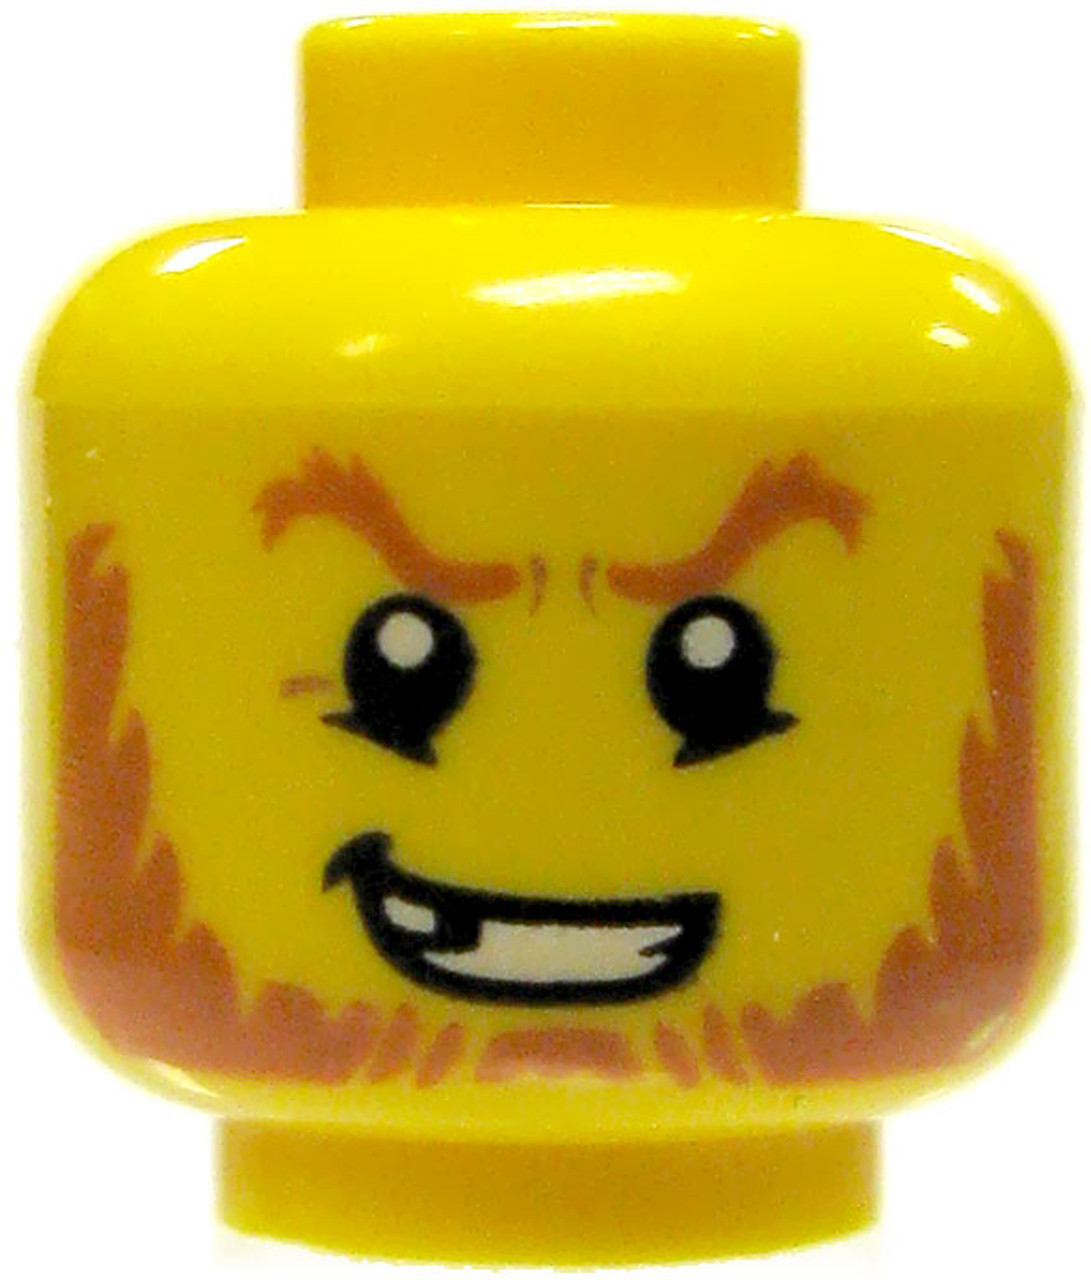 LEGO LEGO Minifigure Parts Yellow Male with Red Beard, Sneer ...